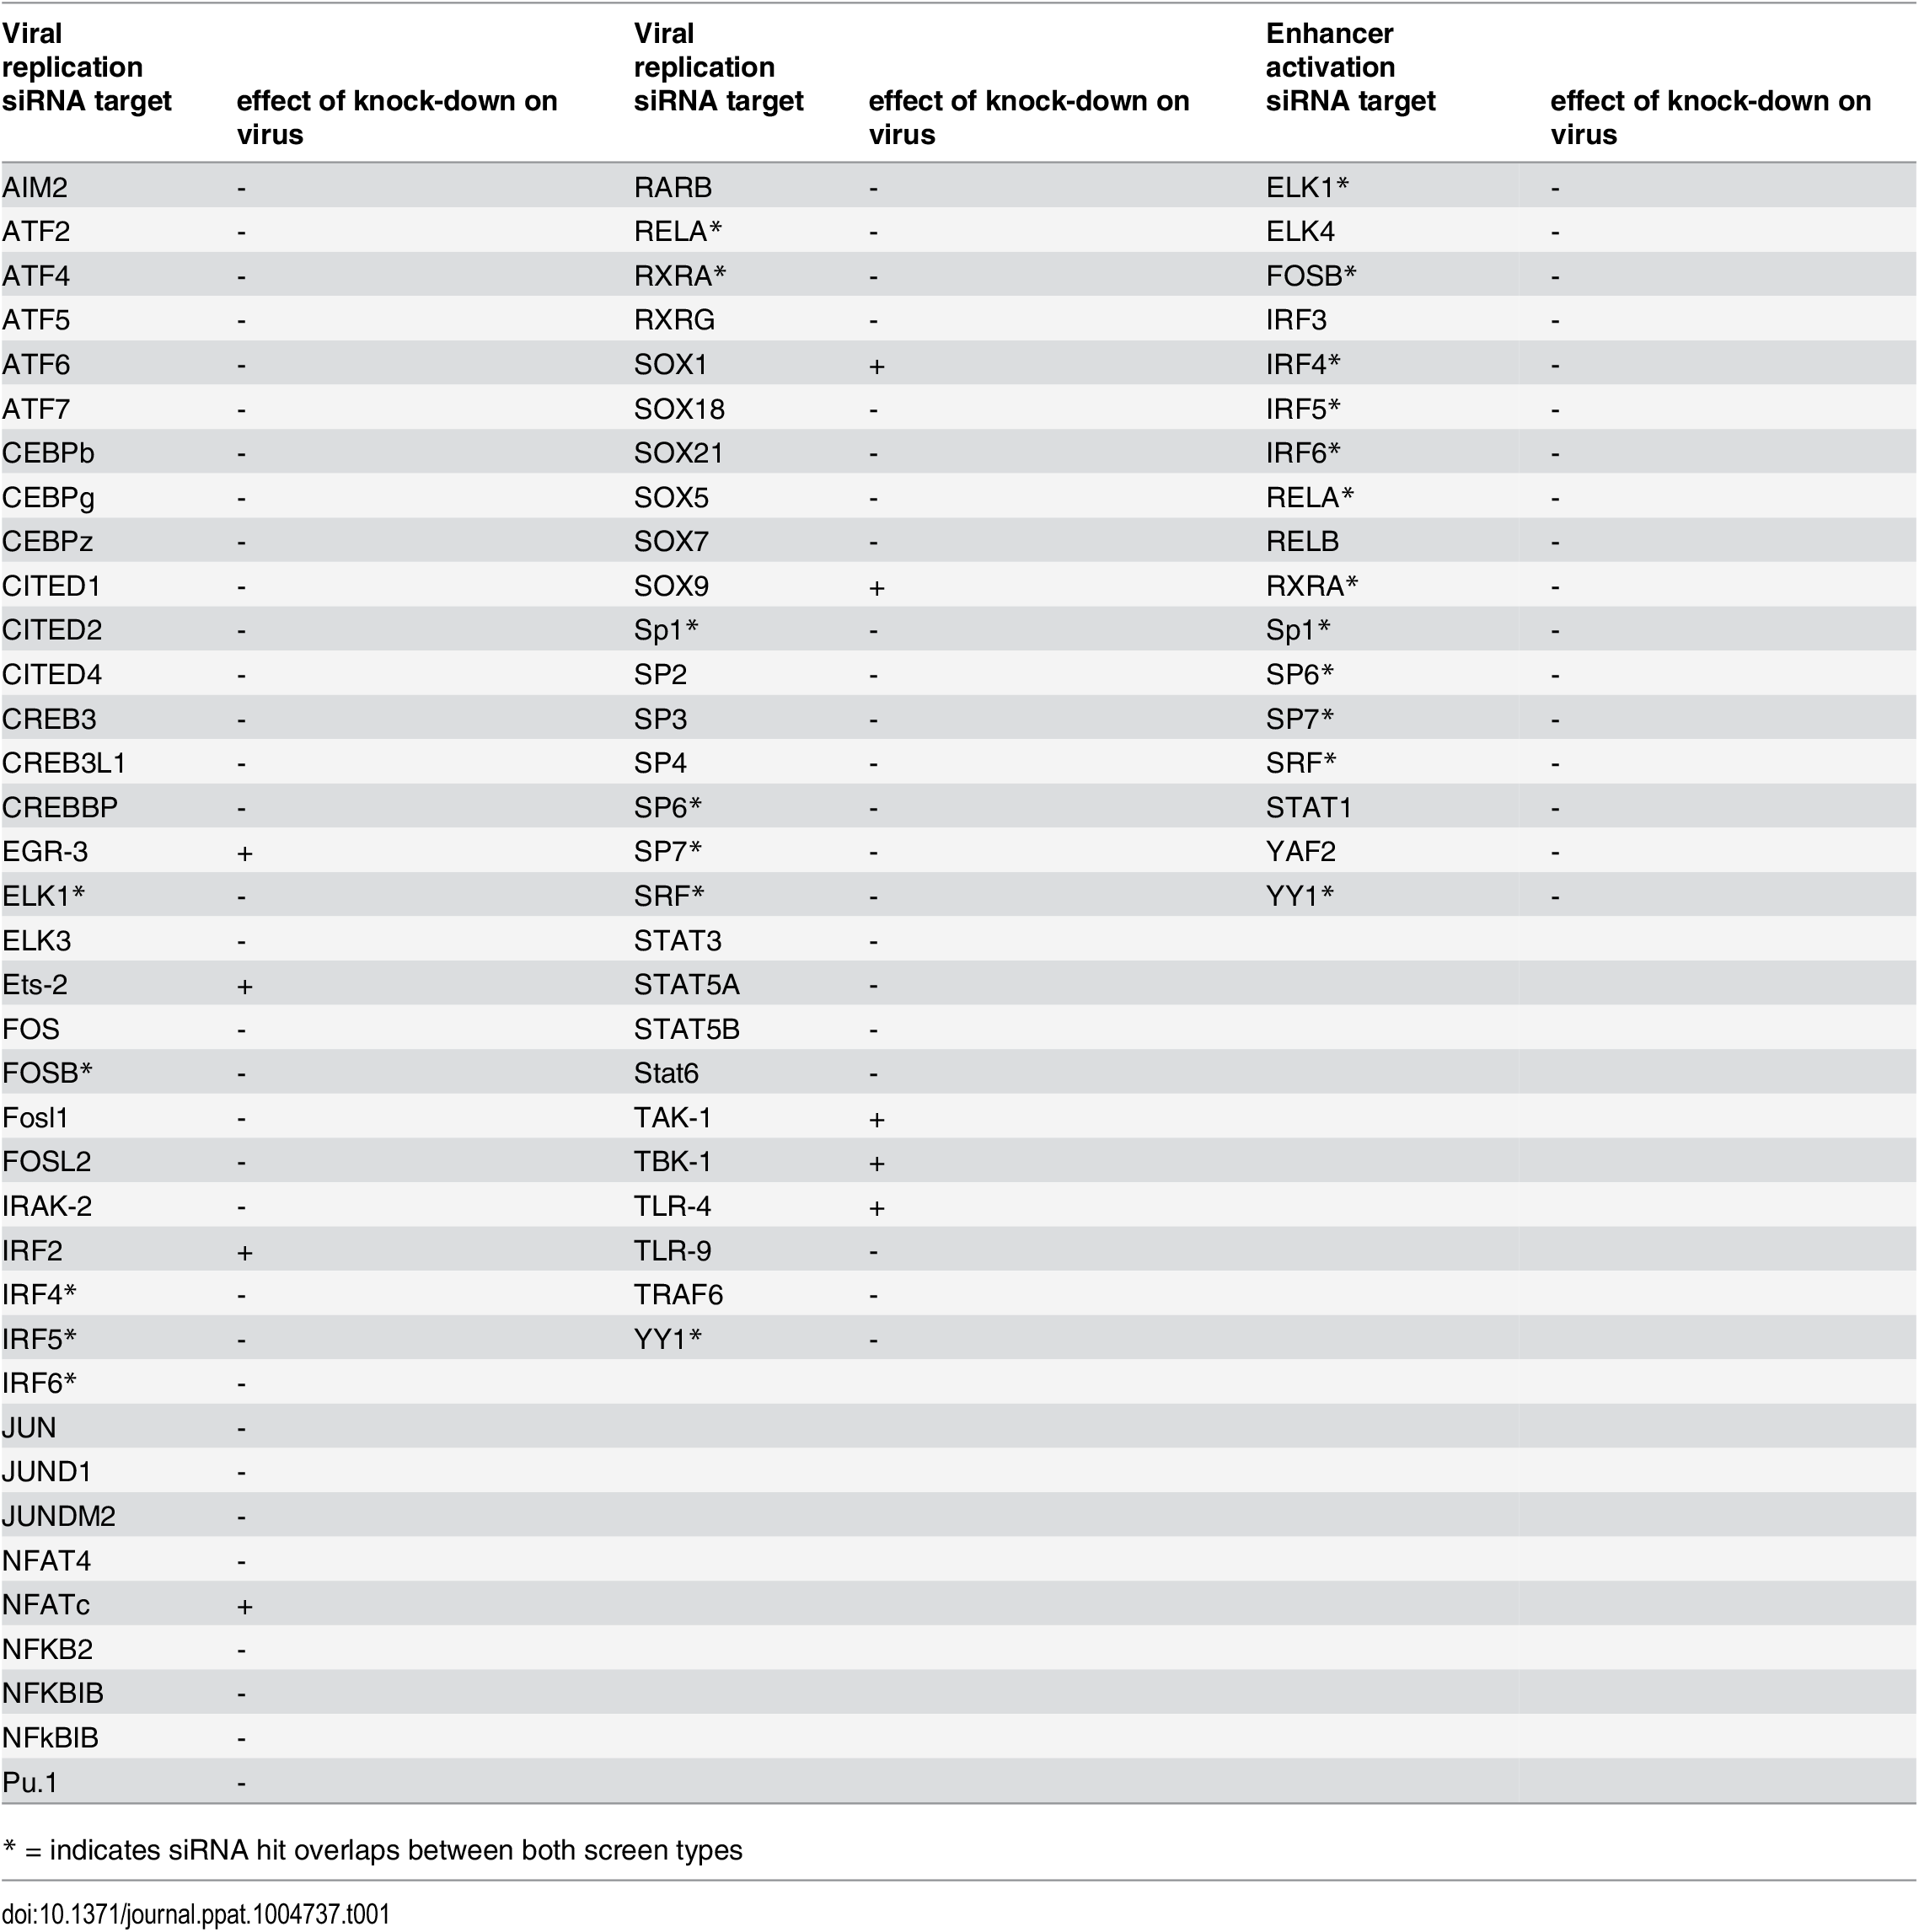 Comparison of significant siRNA hits for viral replication and enhancer activation from statistical meta-analysis.